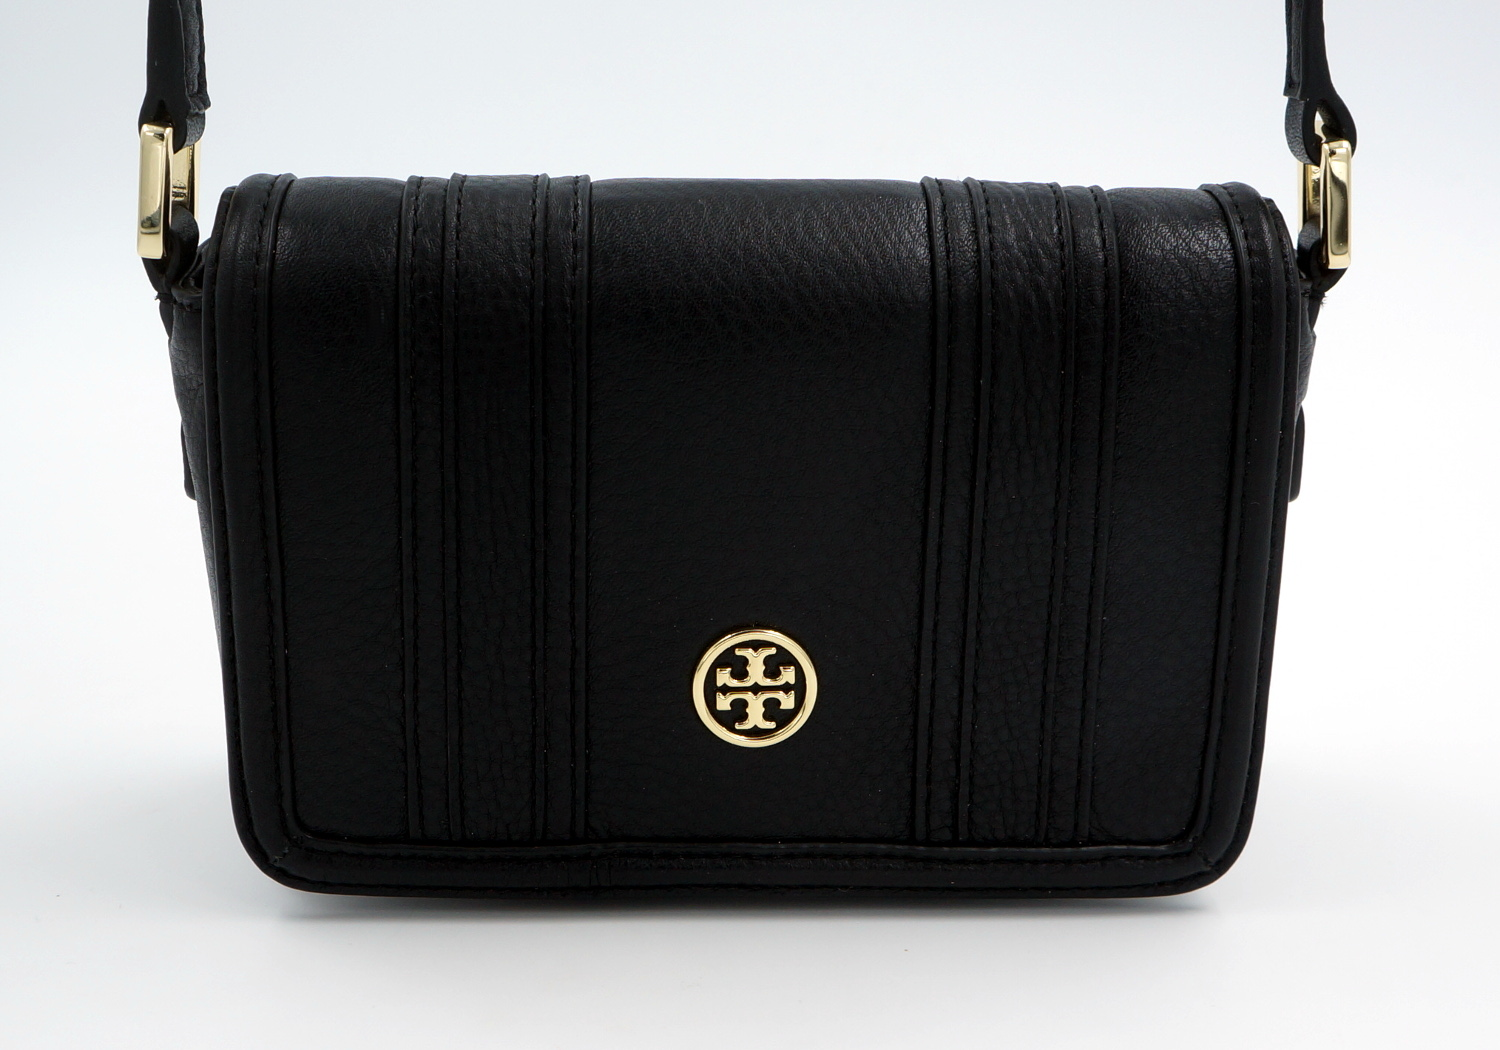 tory burch schulter tasche handtasche leder schwarz. Black Bedroom Furniture Sets. Home Design Ideas